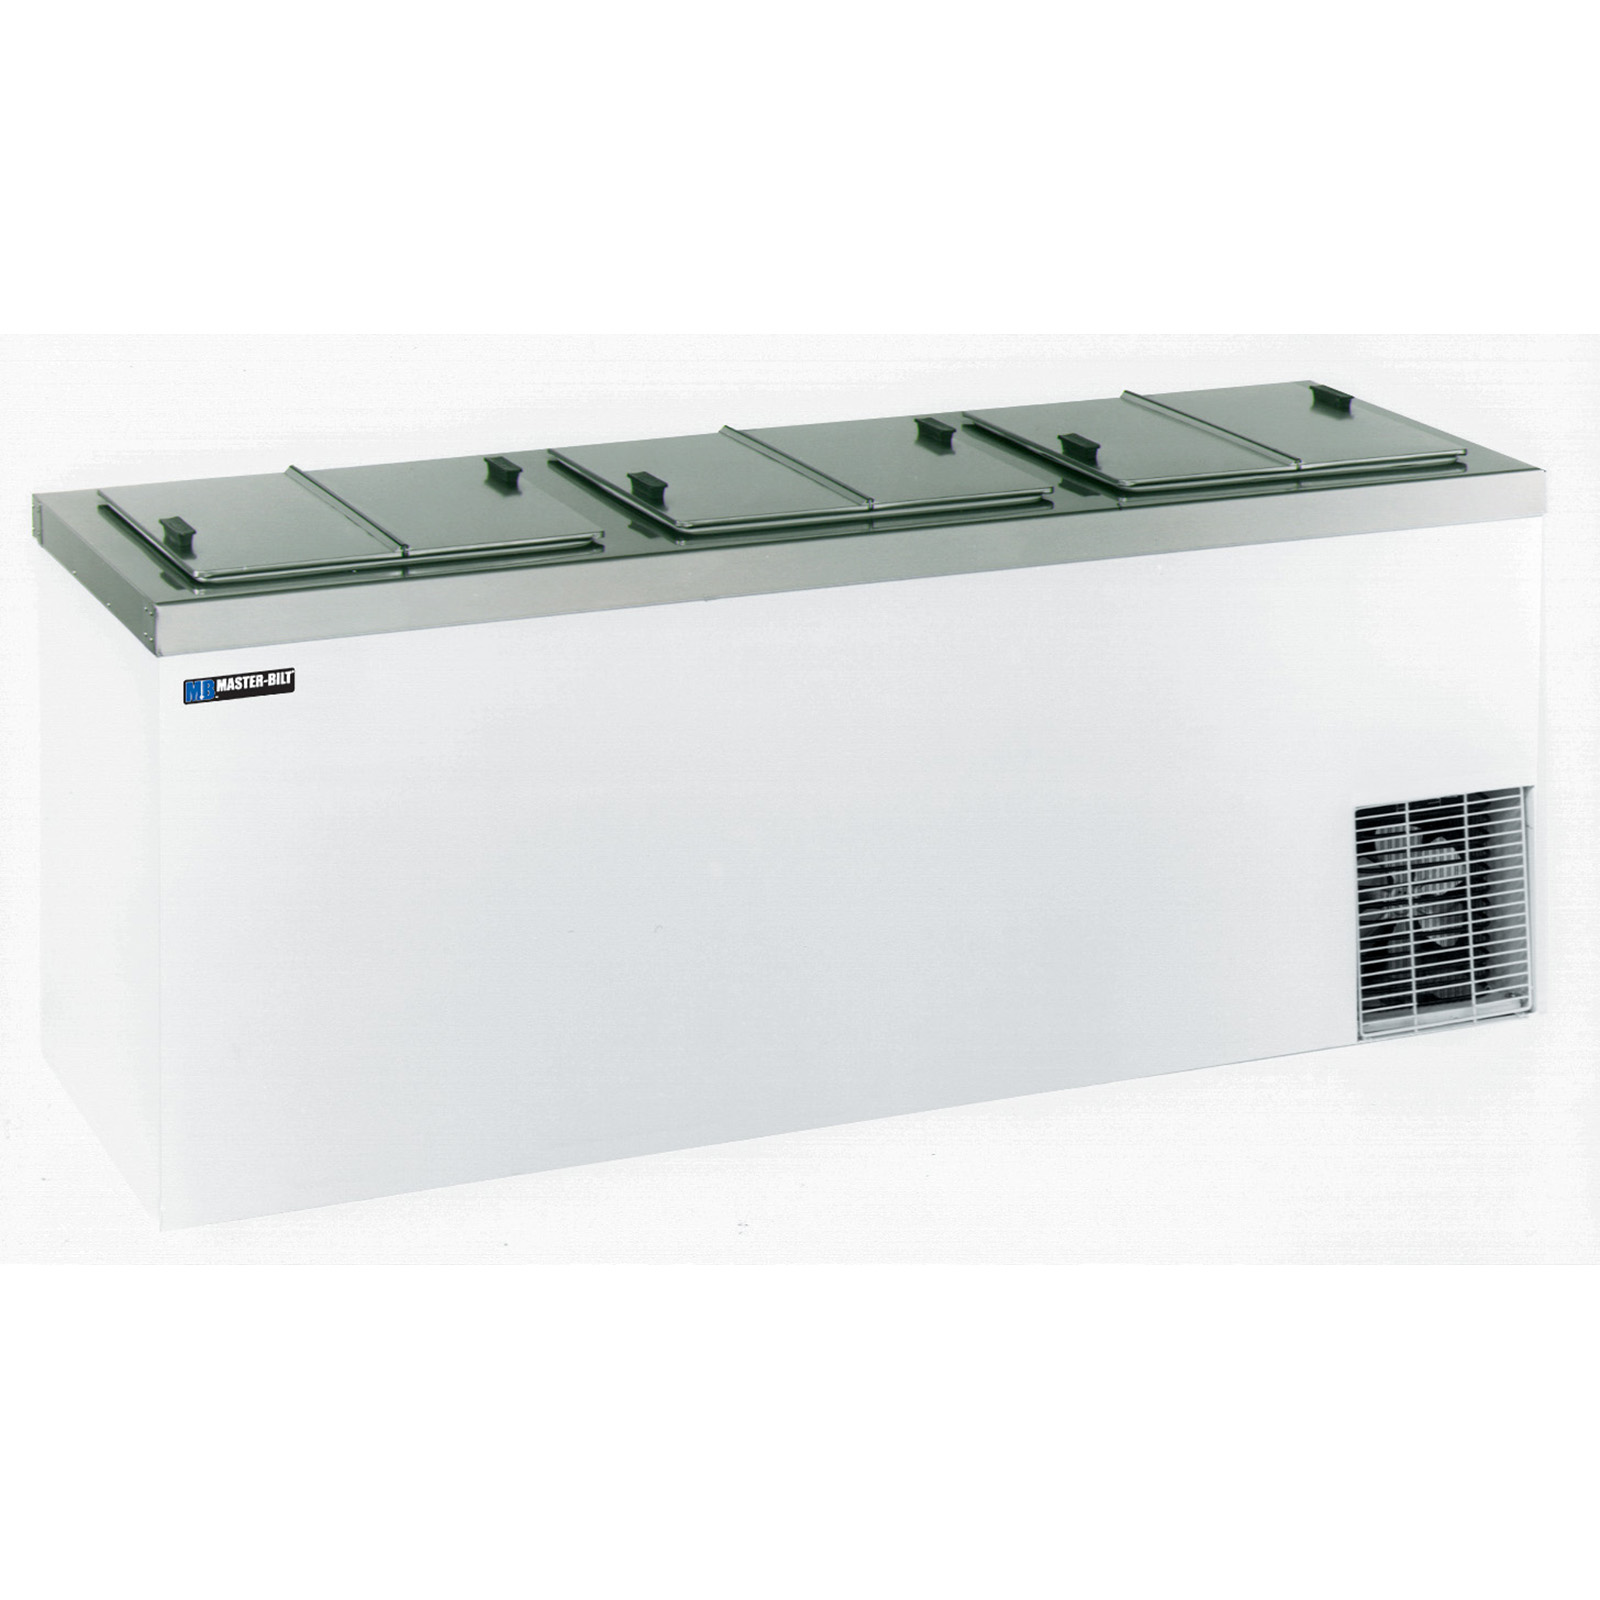 Master-Bilt Products DC-12D ice cream dipping cabinet